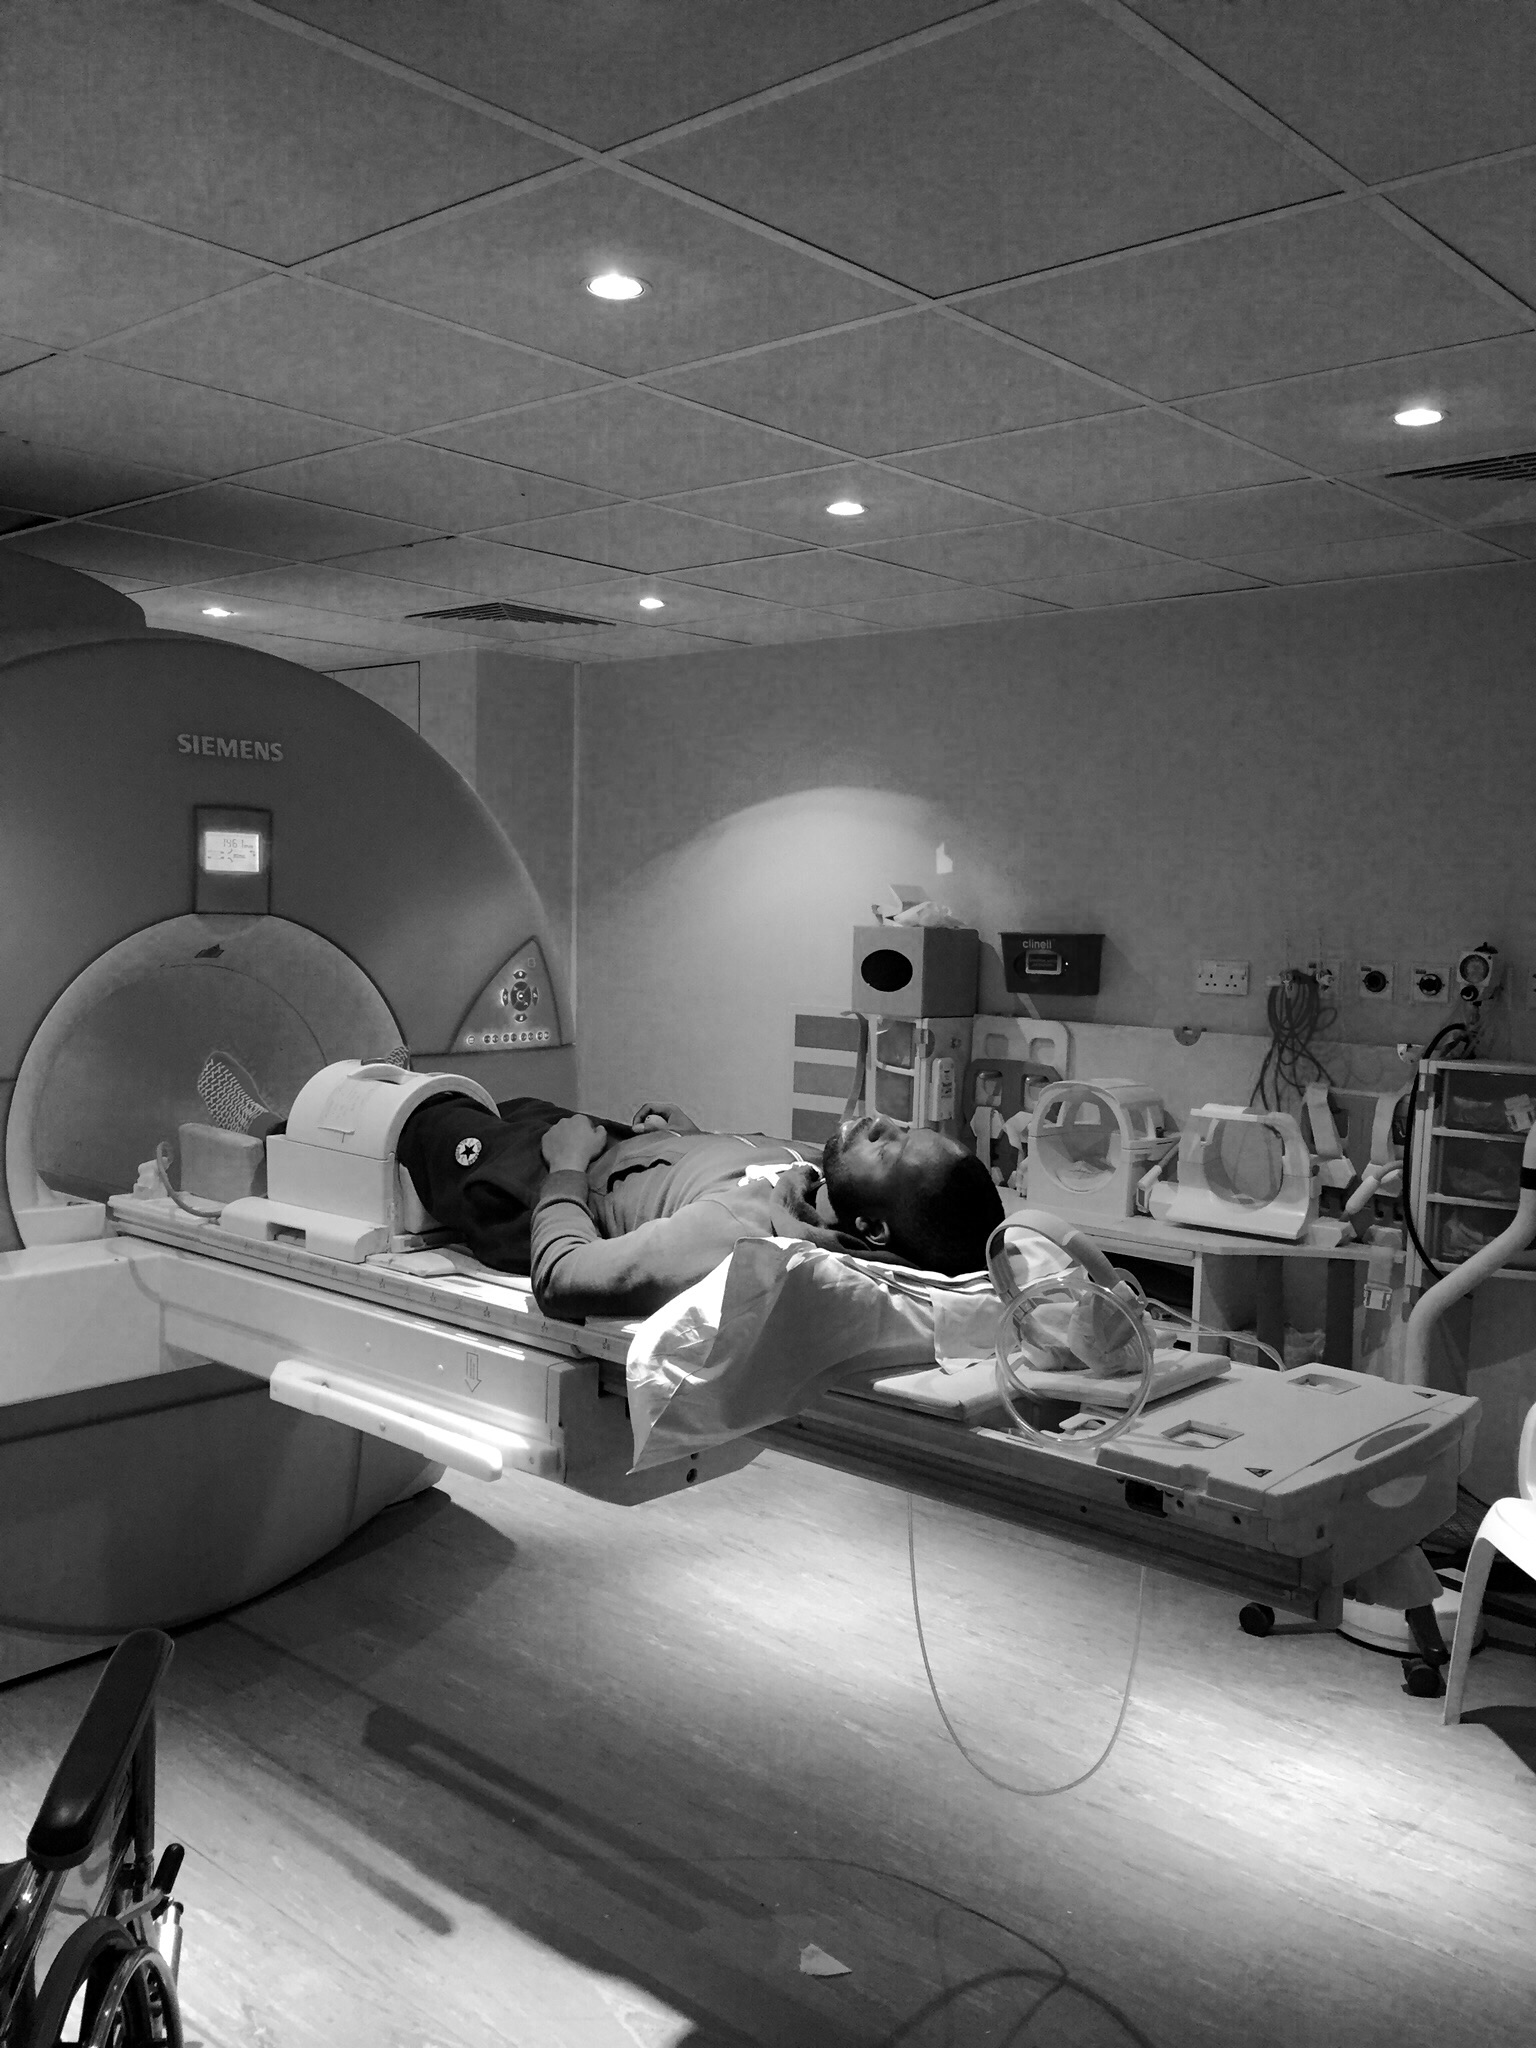 Results of the first MRI scan